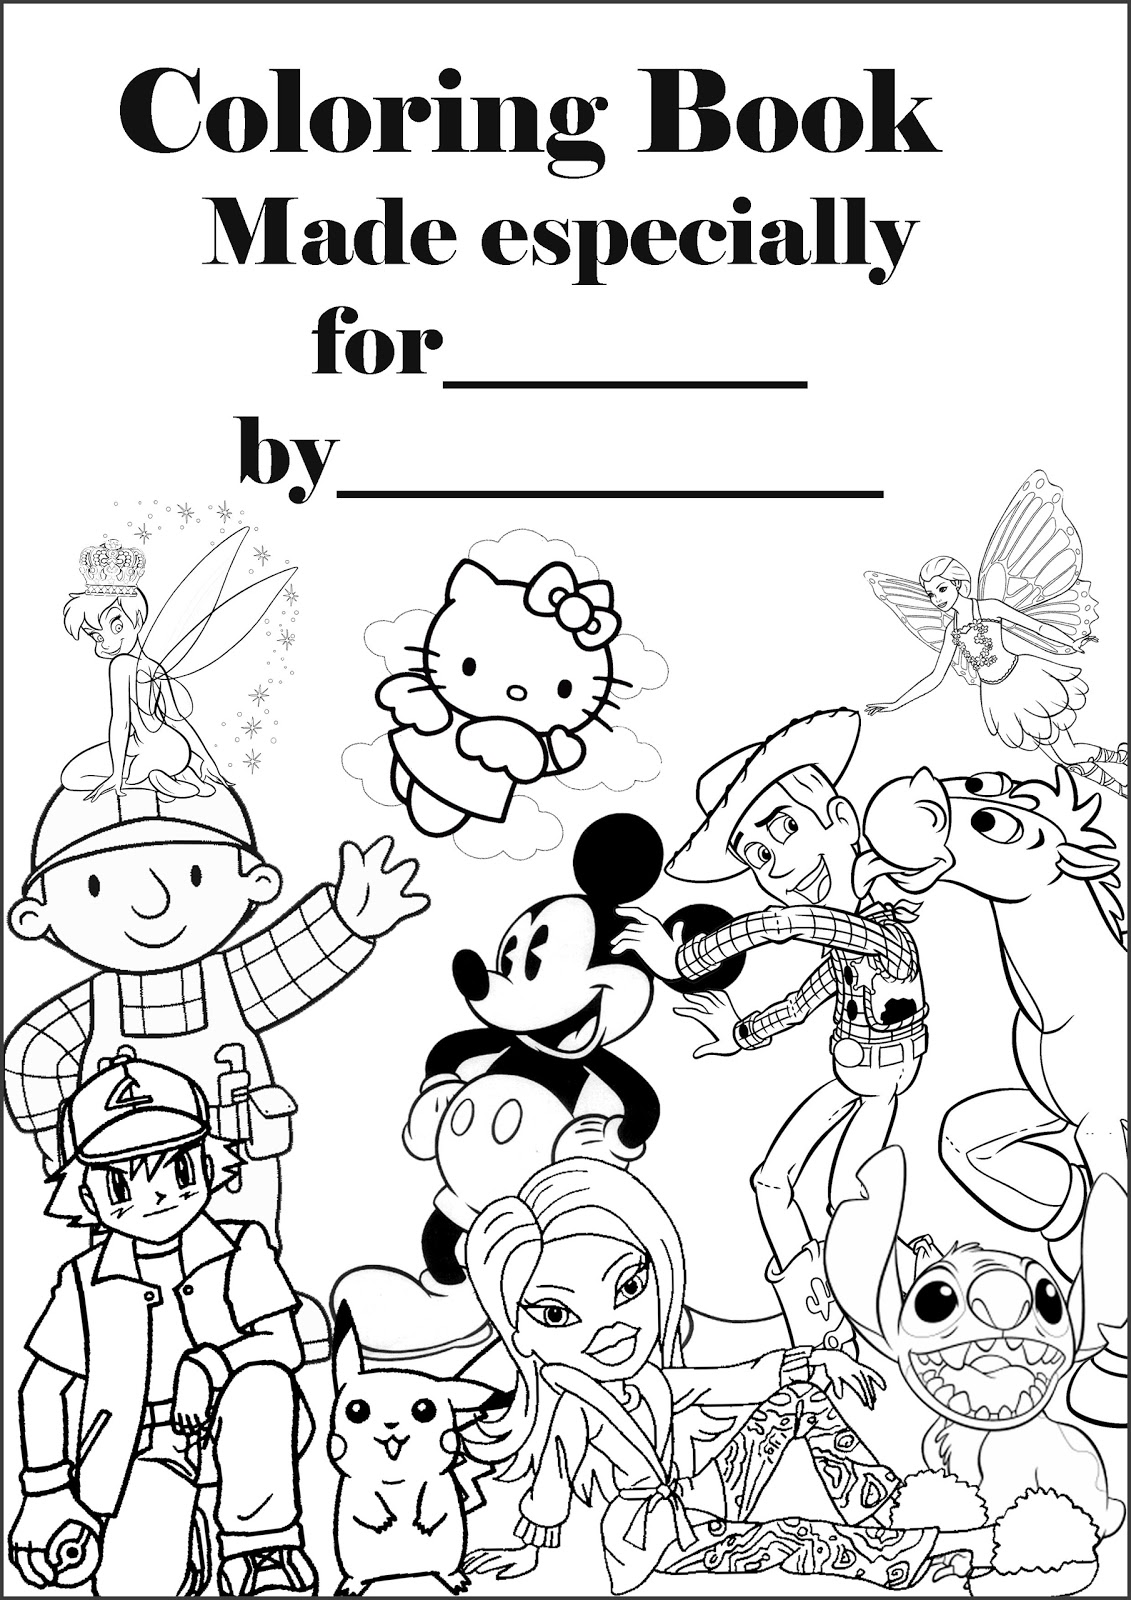 coloring pages of boooks - photo#42